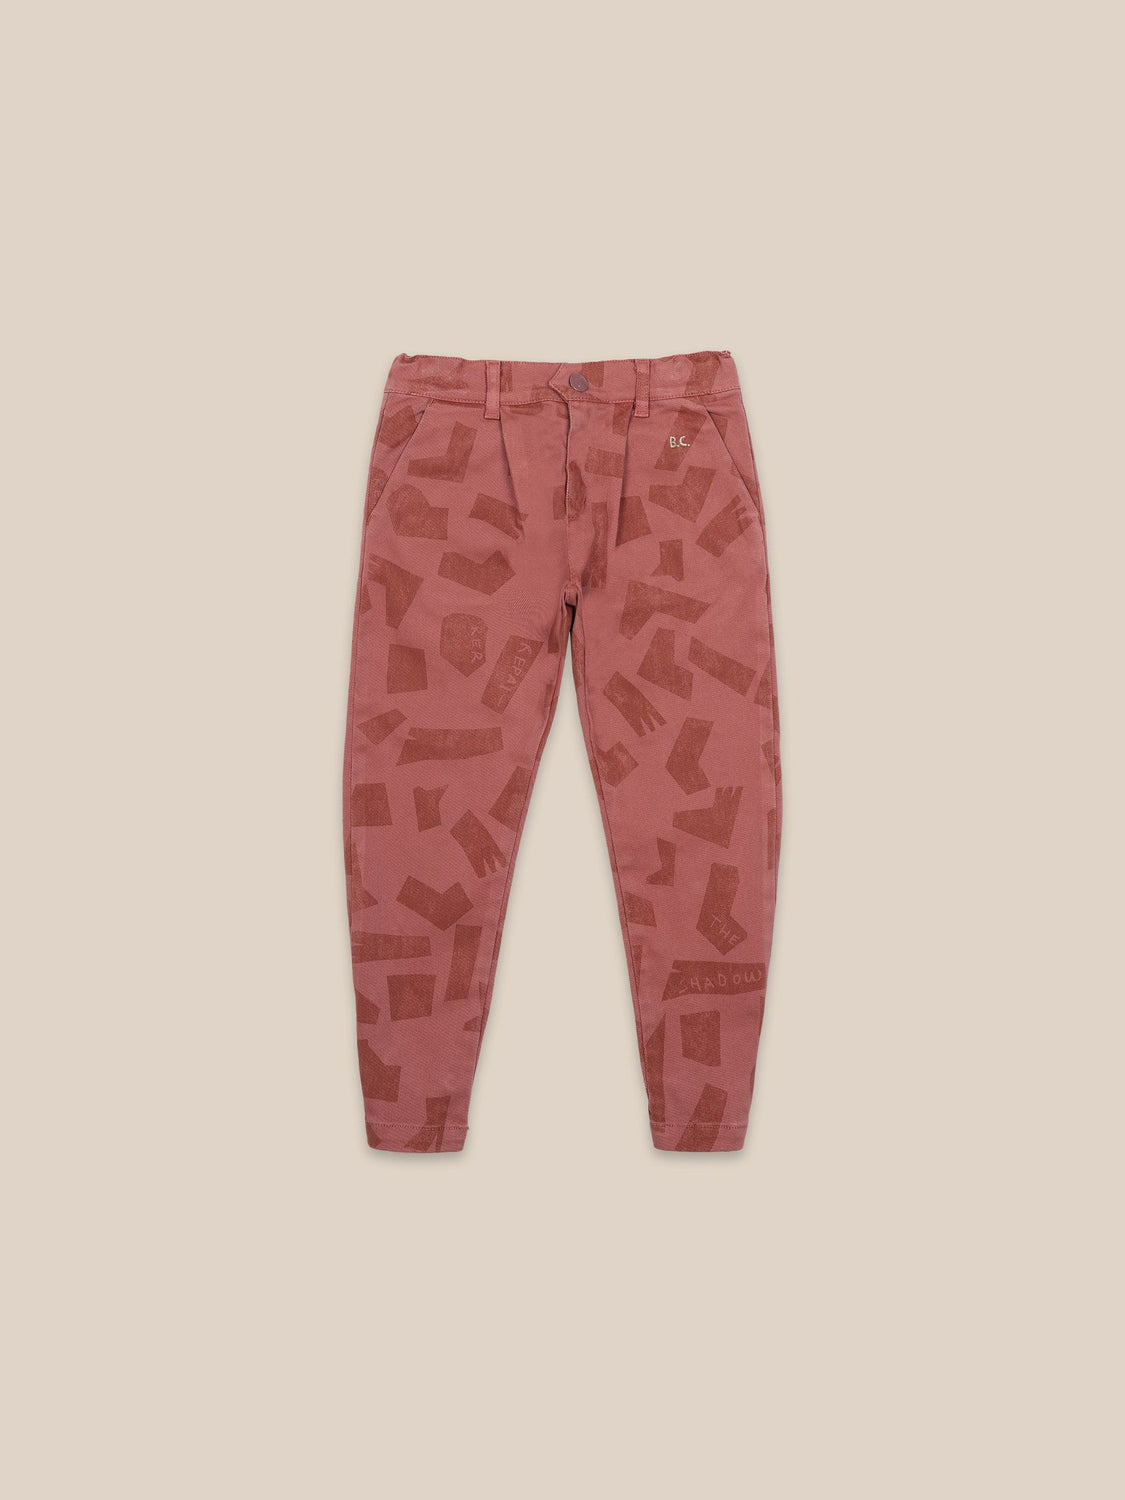 BOBO CHOSES Shades All Over Chino Pants